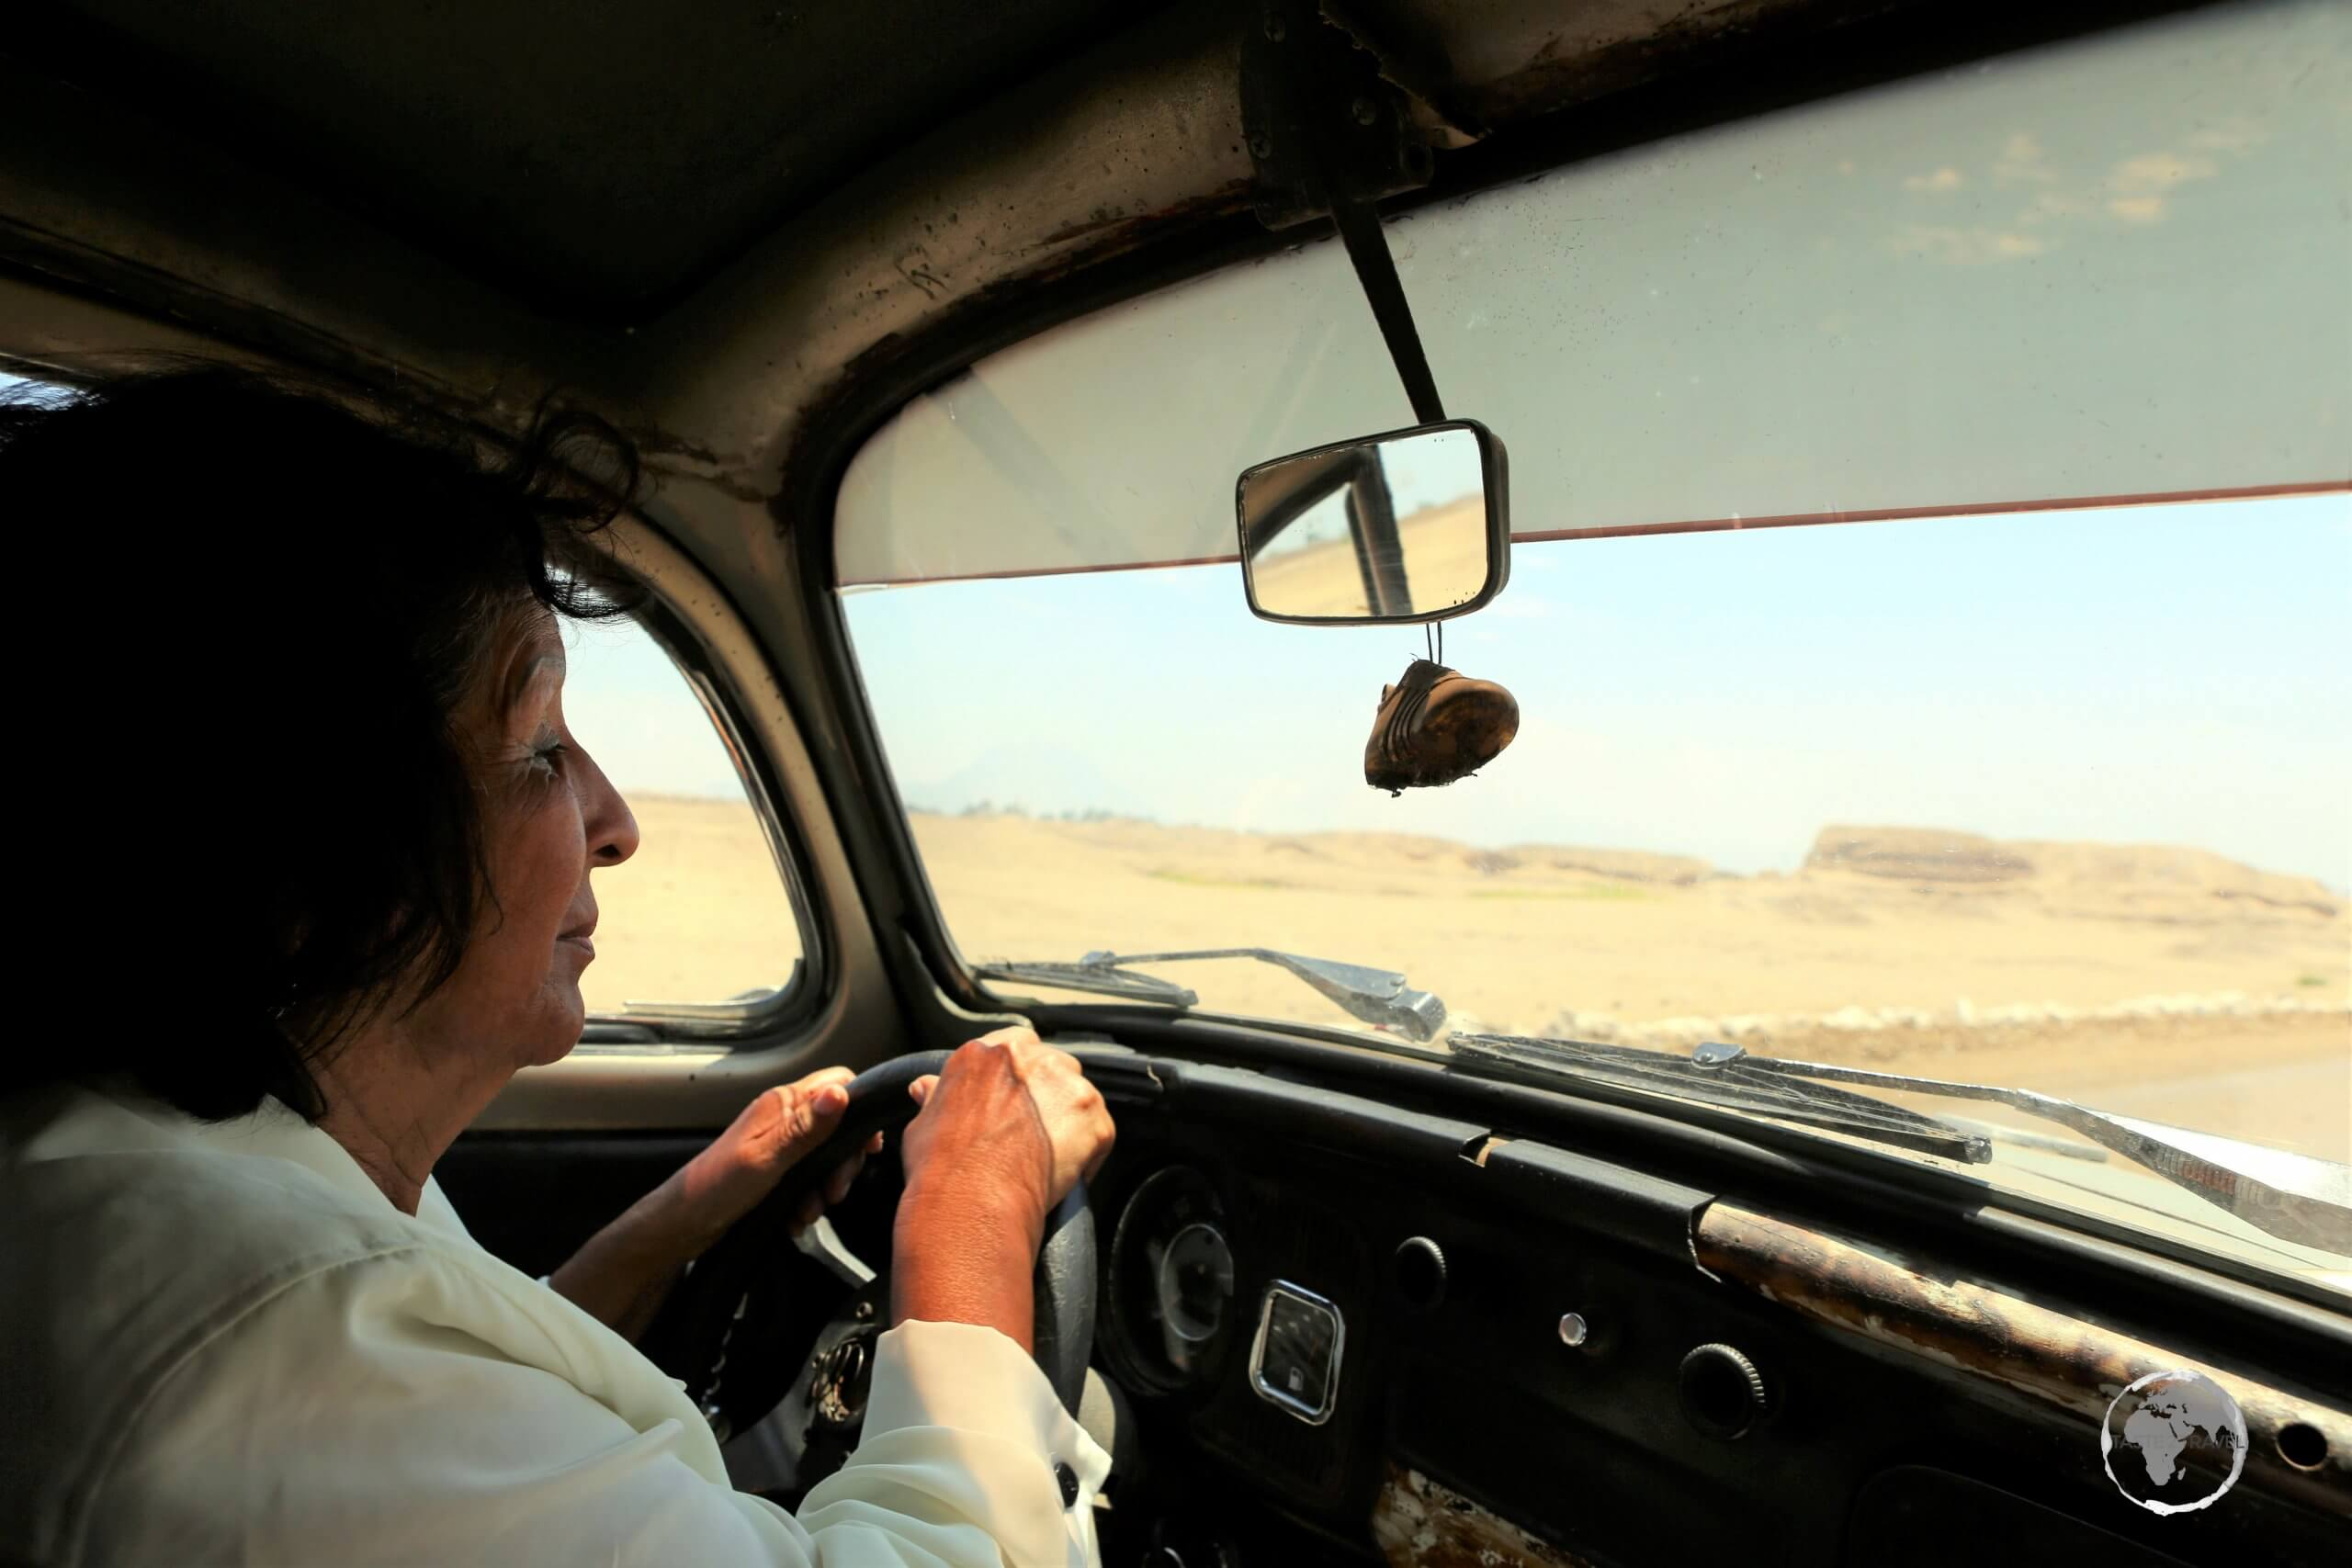 Touring the Moche ruin sites of Trujillo with my local guide Sonia, in her trusty VW, which was also a relic!